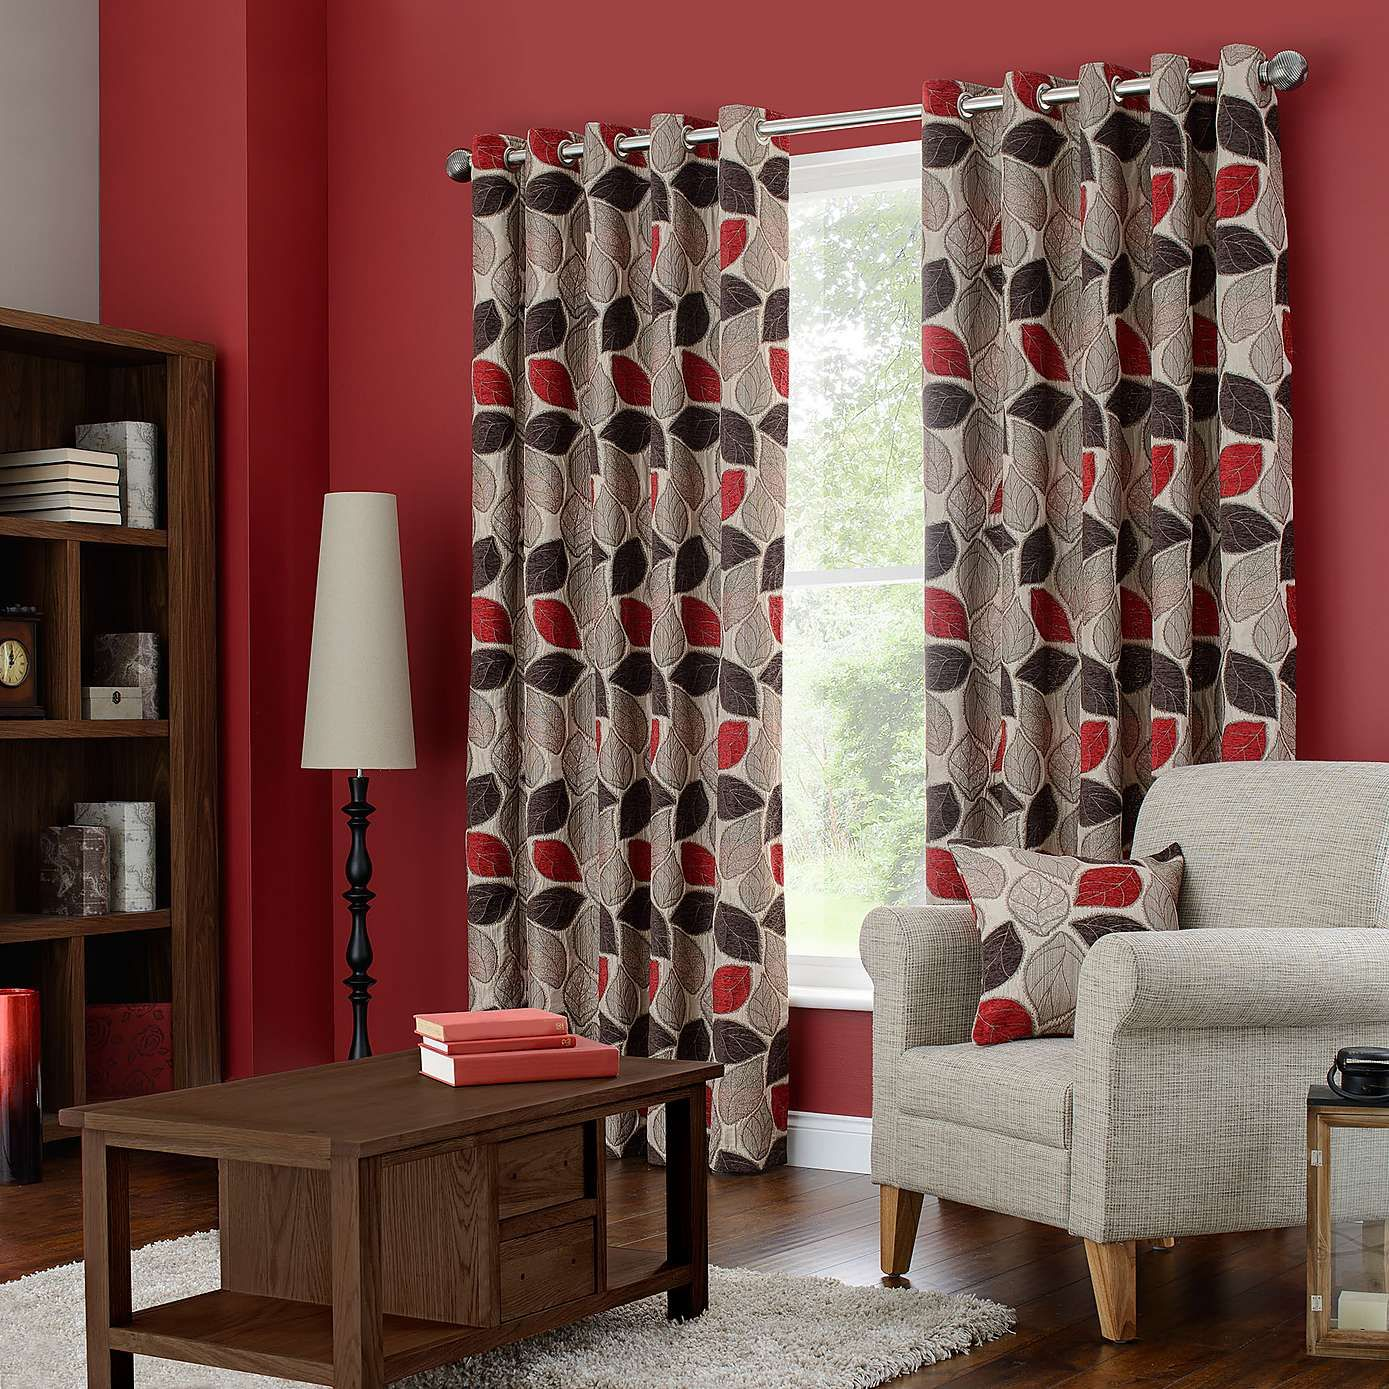 Exceptional Sherwood Red Lined Eyelet Curtains | Dunelm Part 21